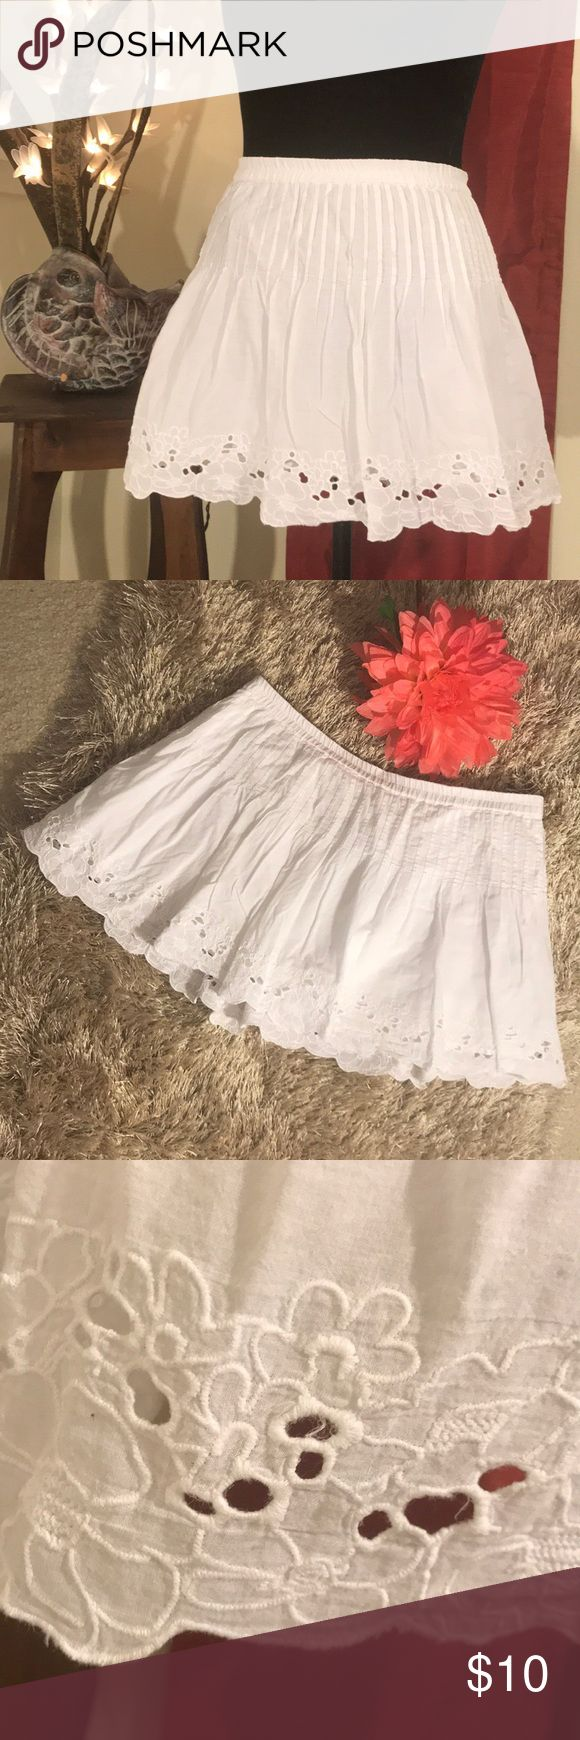 "Miniskirt Eyelet lace at the edge, rouched at the hip, this cute ultra mini is Snow White and cute as a button! Has a thin lining underneath. 100% Cotton, and in nice condition.  Measurements Approximate: 13.25"" - waist to hem 32"" - waist Aeropostale Skirts Mini"